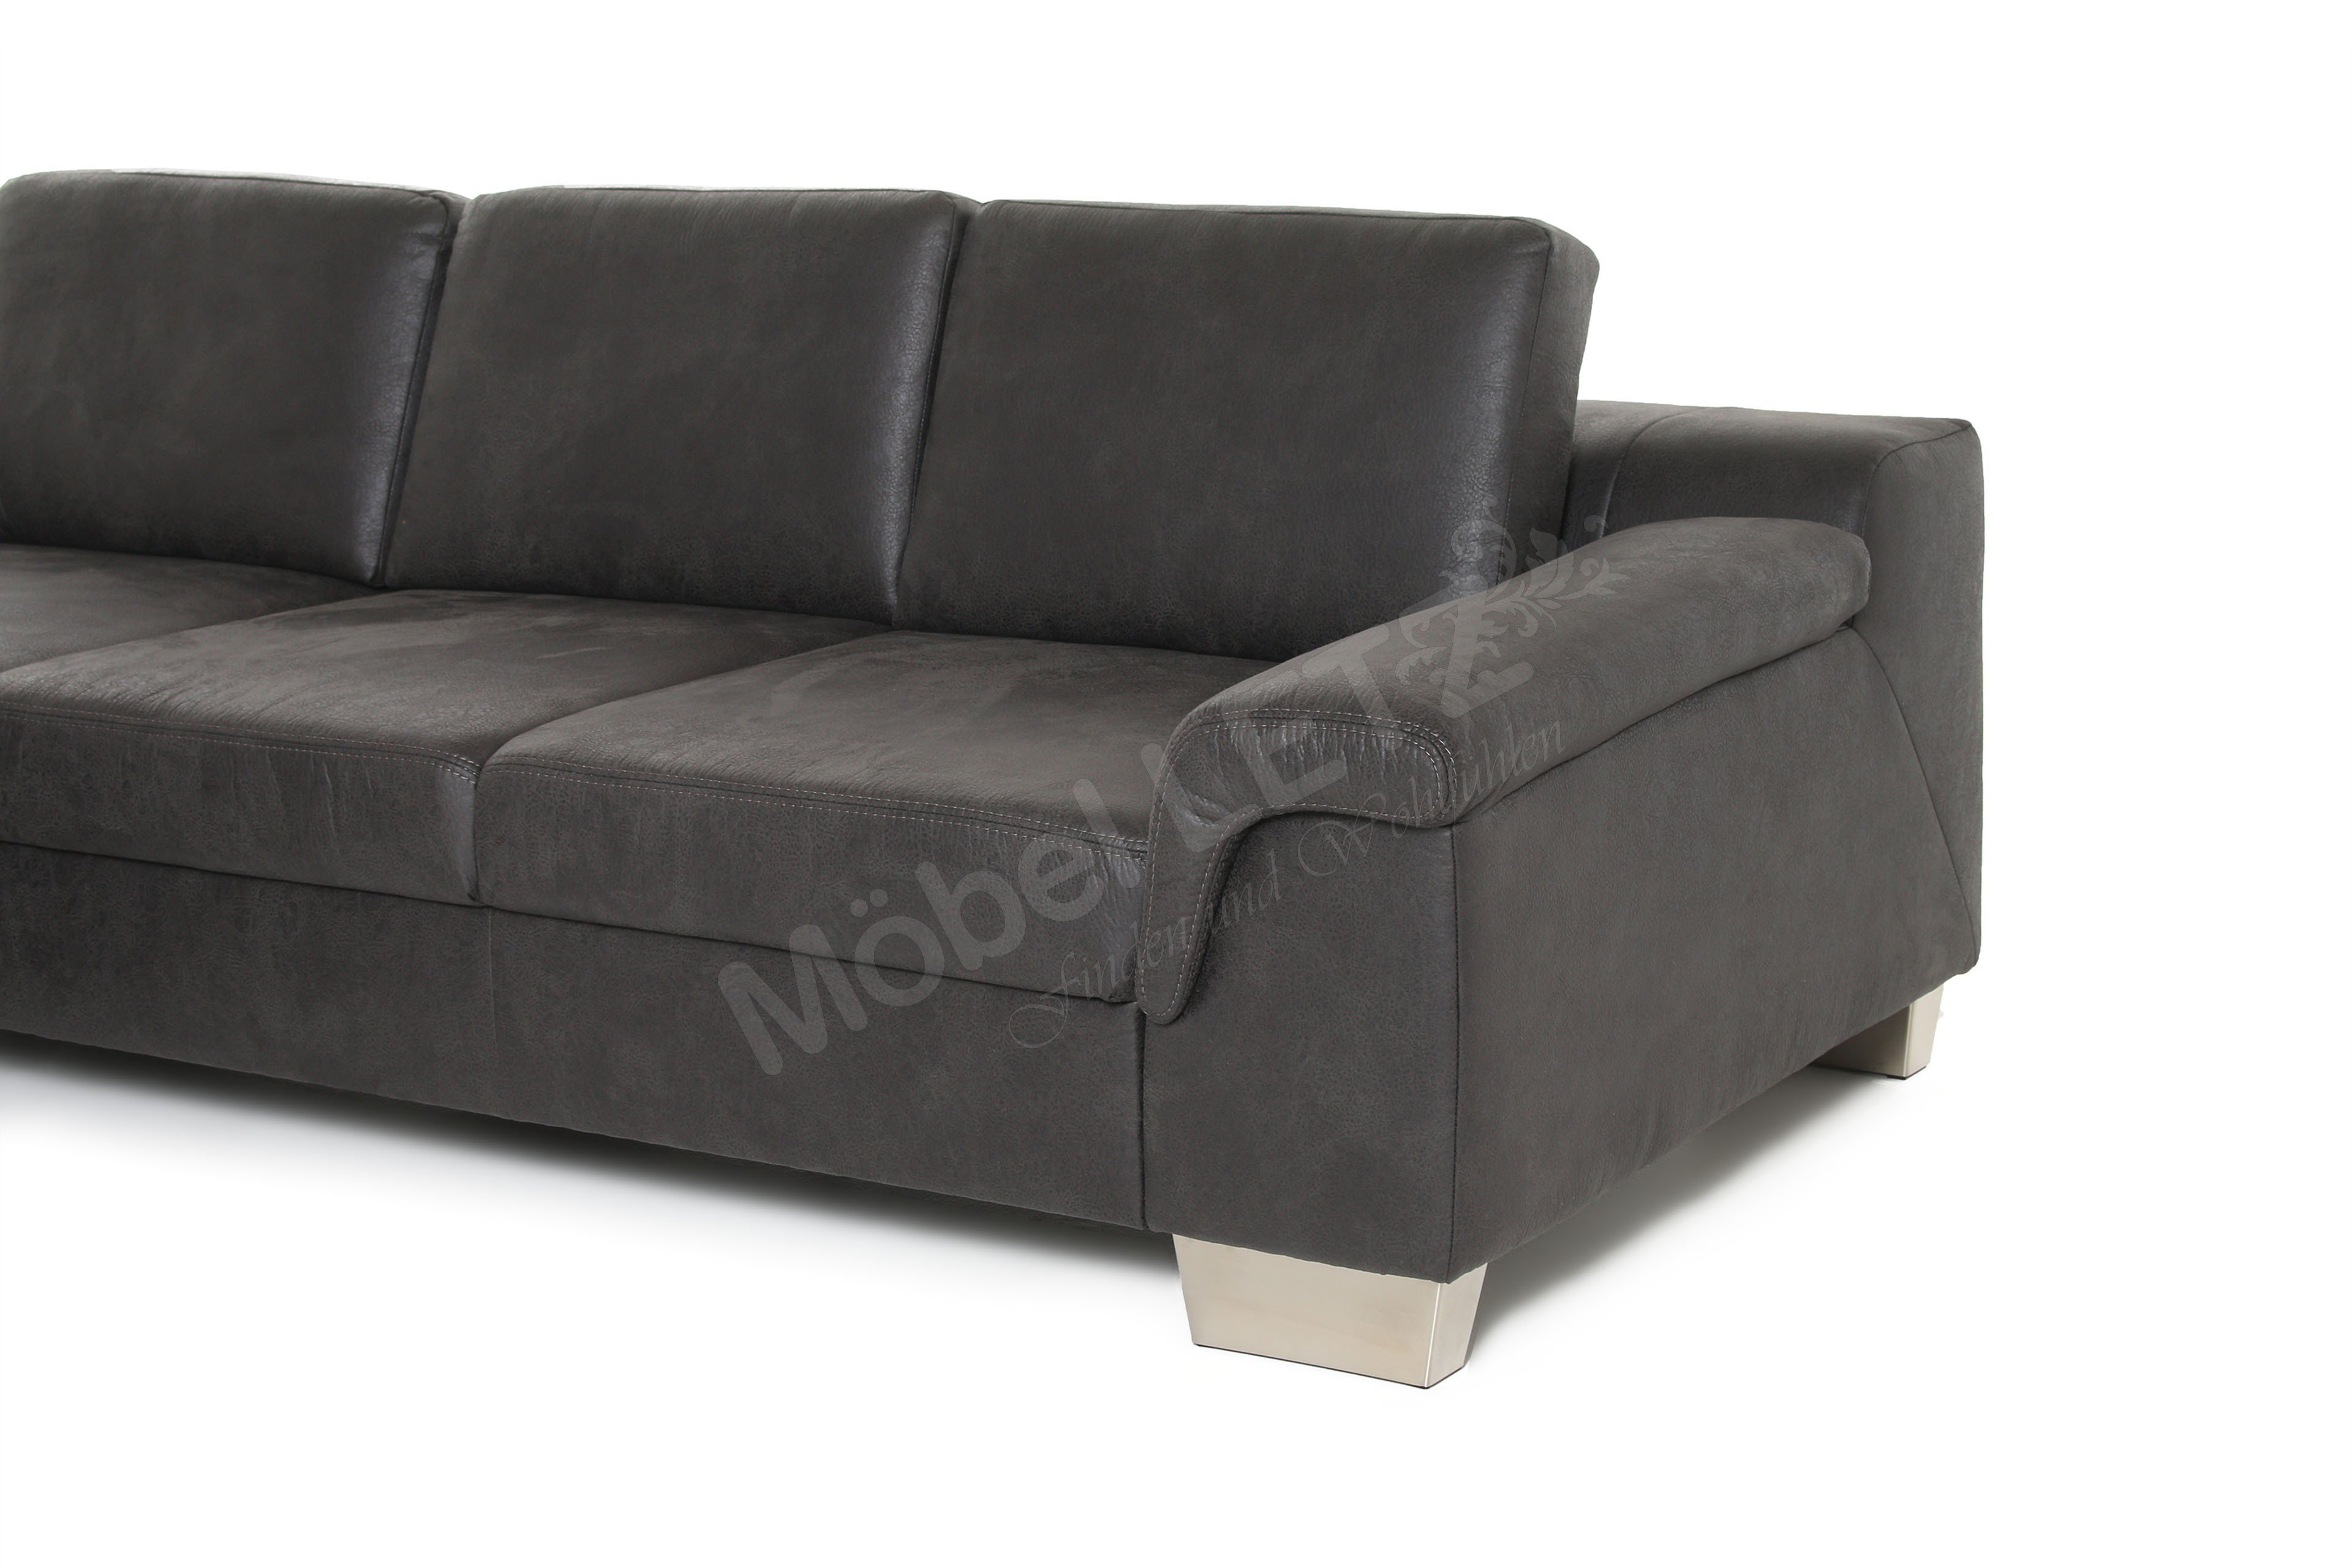 ecksofa auf rechnung ecksofa sofort lieferbar sofa sofort lieferbar auf rechnung polstermbel. Black Bedroom Furniture Sets. Home Design Ideas